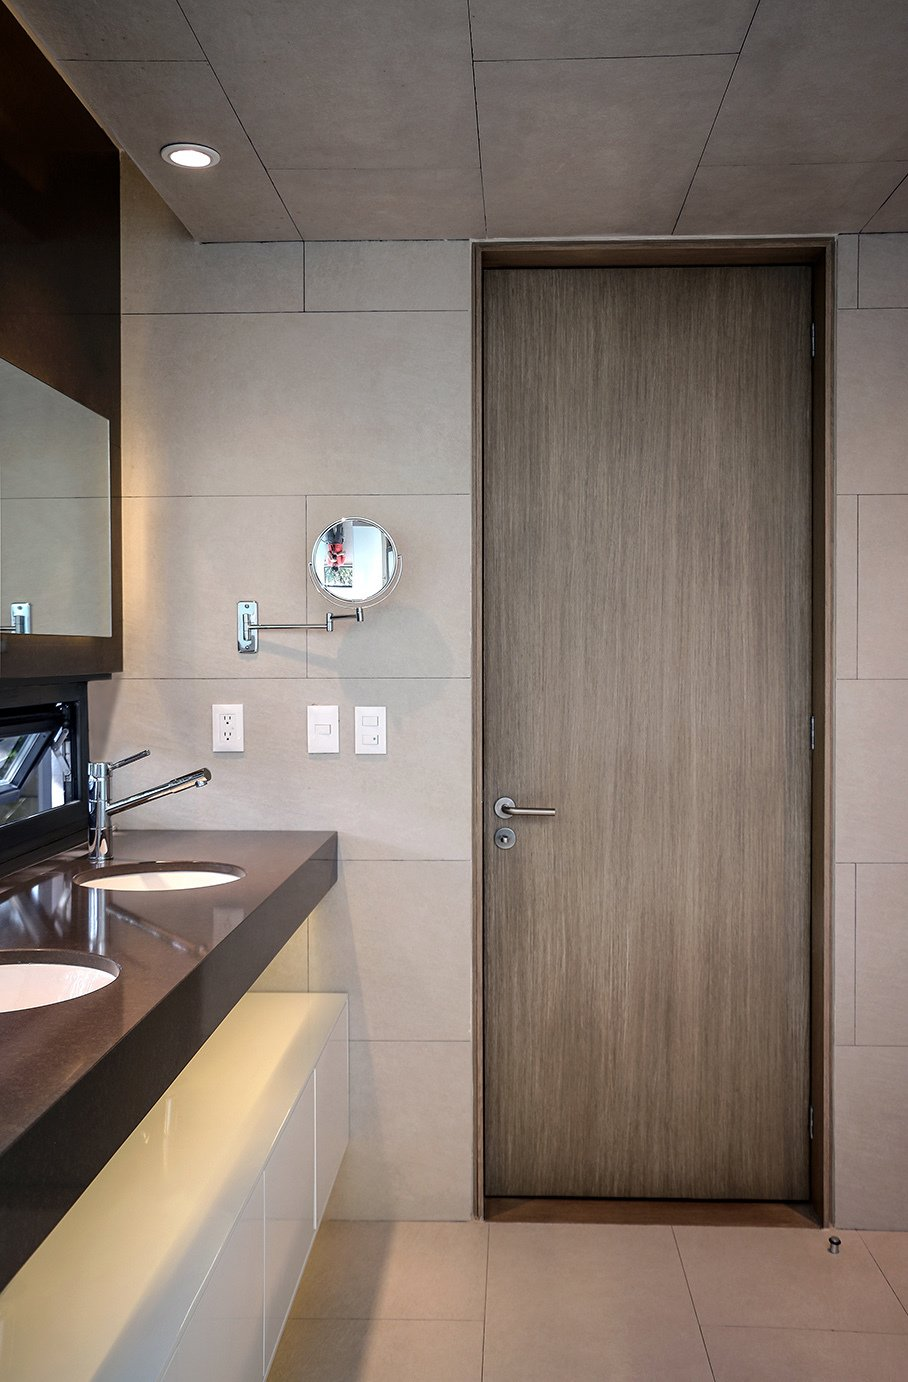 The door is made of MDF panels attached  to a wood frame and topped with an ash veneer. The tiles are from Spanish brand Vives. Tagged: Bath Room, Engineered Quartz Counter, Recessed Lighting, Cement Tile Floor, Drop In Sink, and Stone Tile Wall.  Photo 8 of 13 in Retired Couple Build Modern in Mexico City